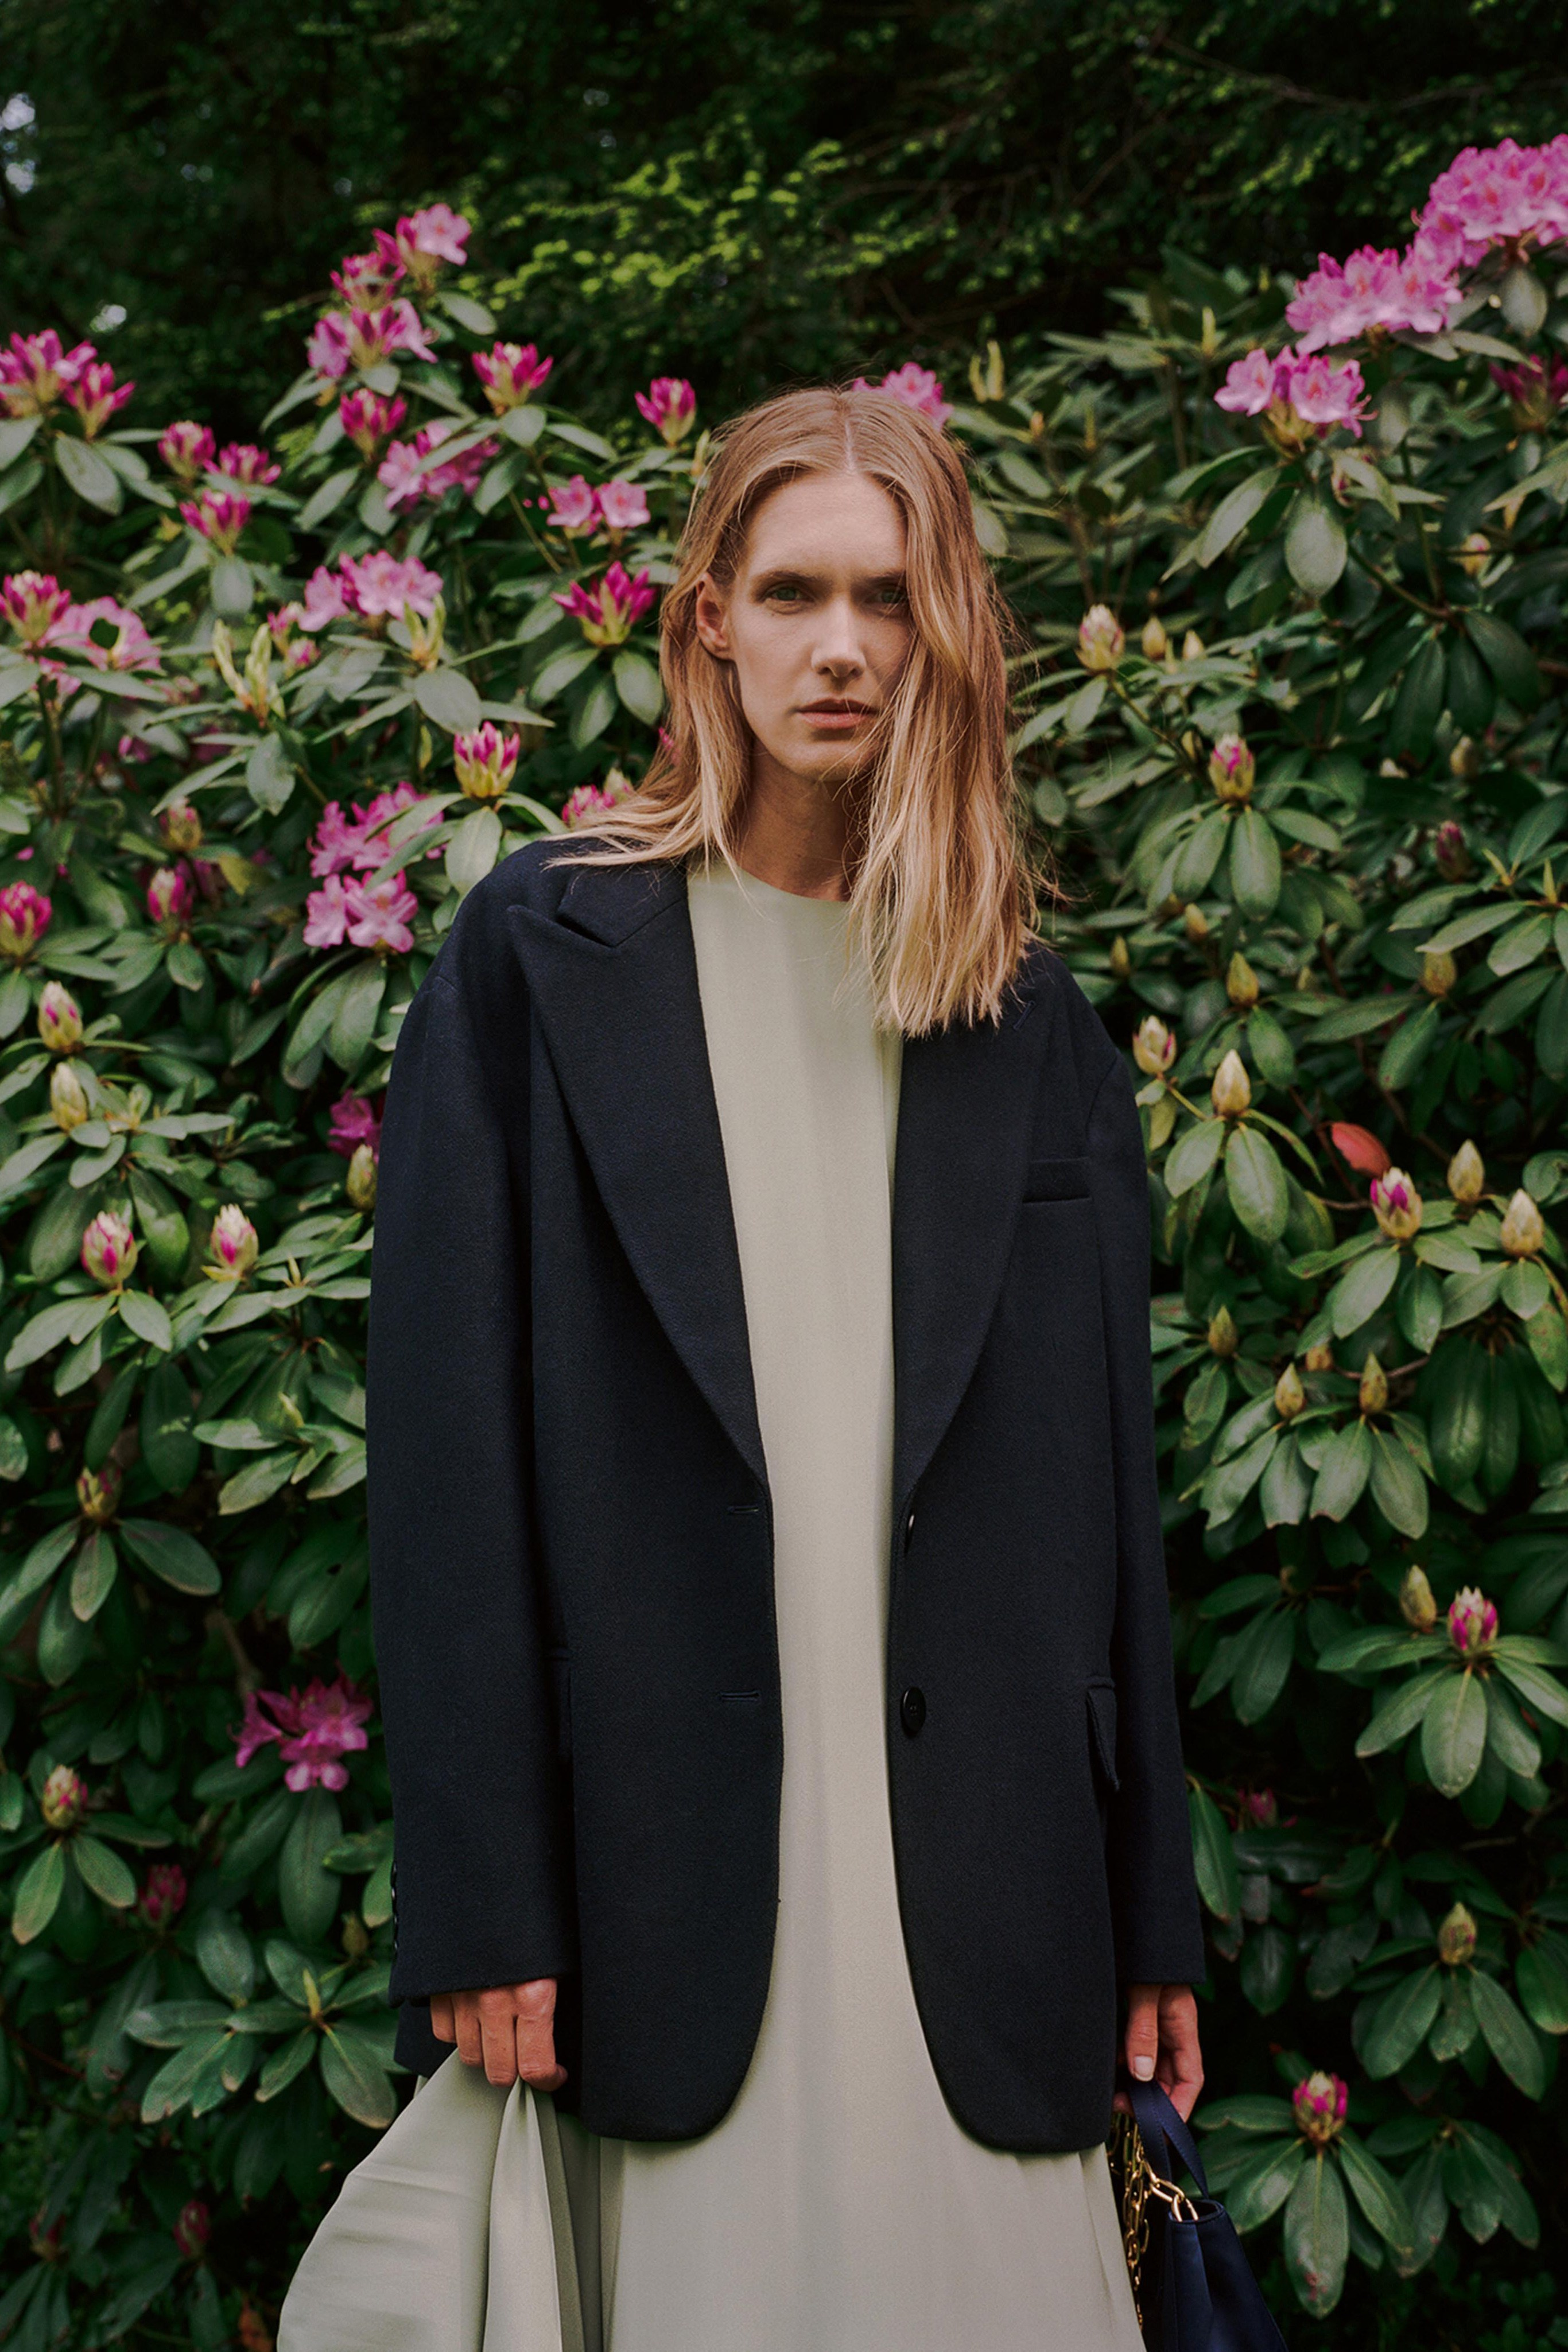 Tibi Resort 2020 Fashion Collection